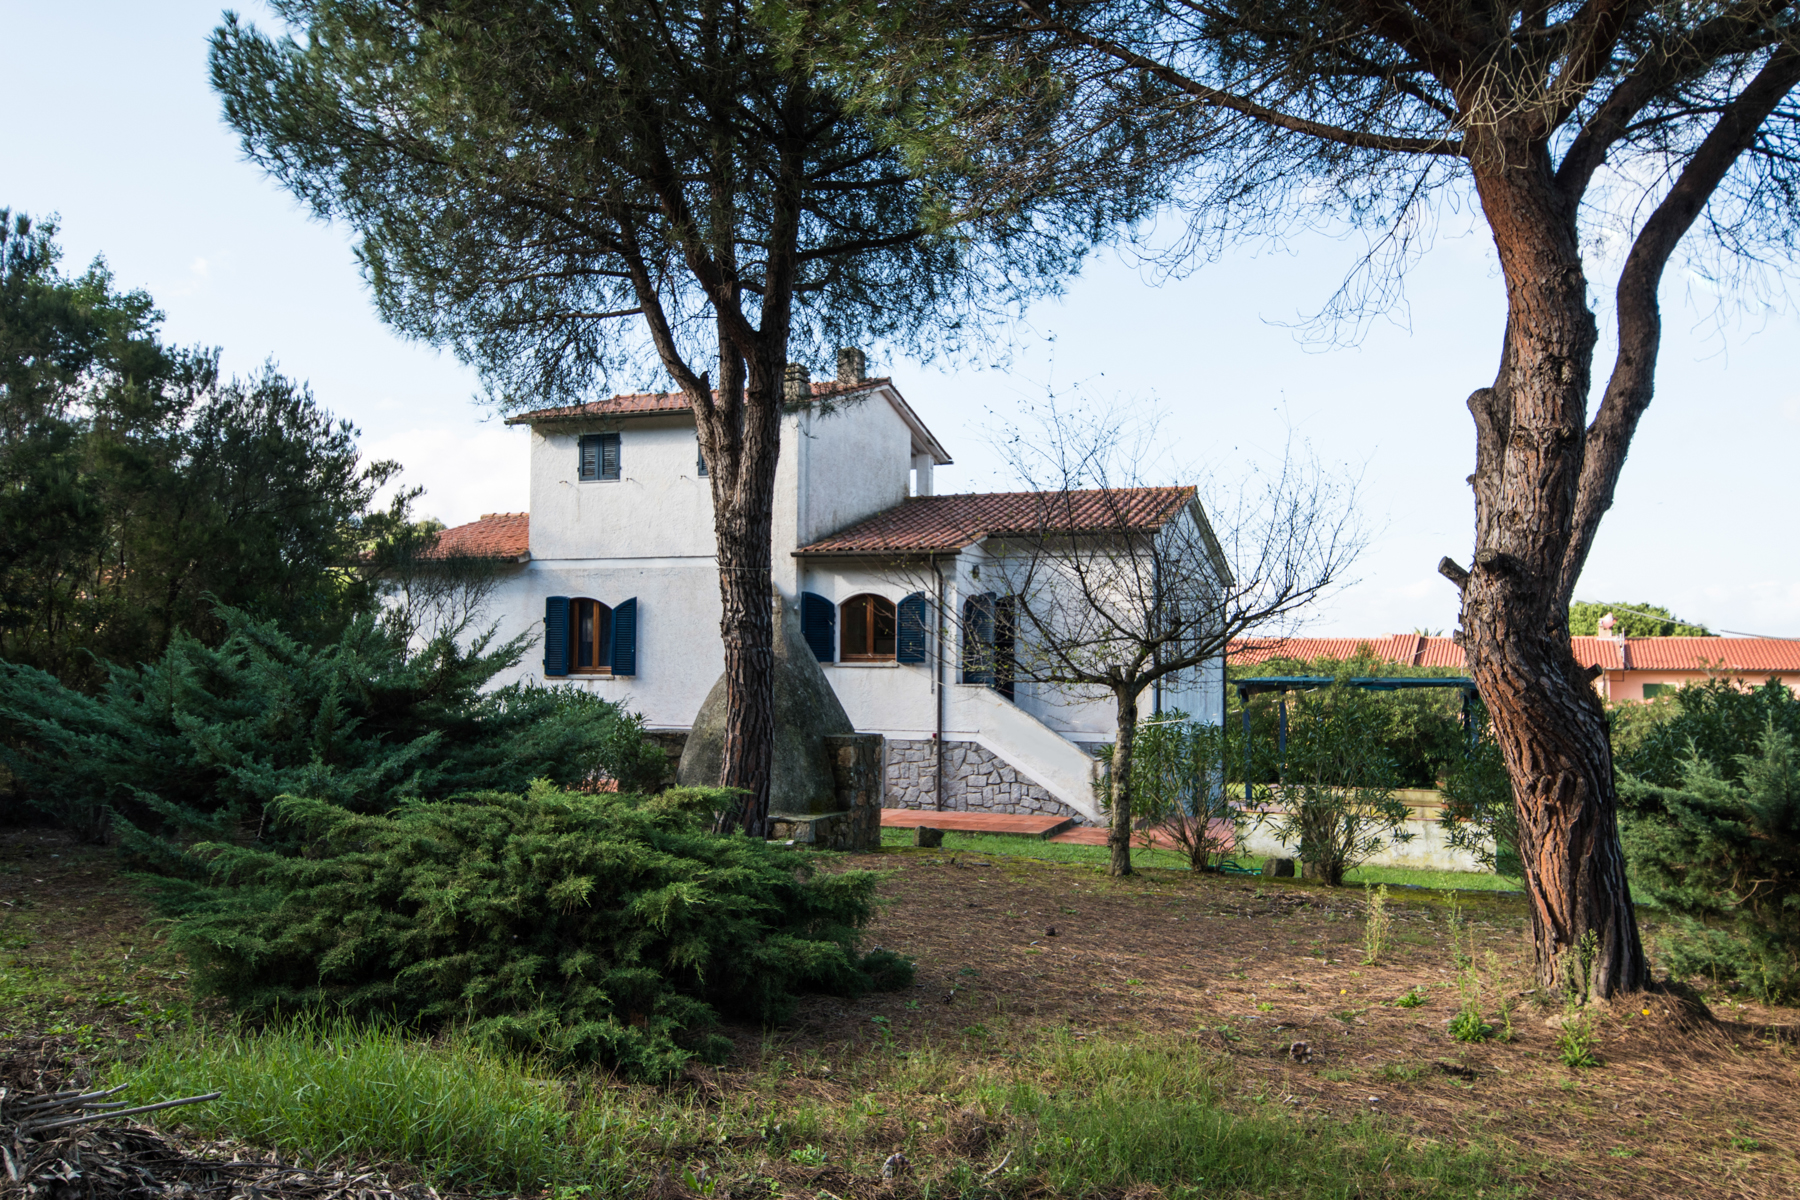 Additional photo for property listing at Detached villa nestled within fenced garden Via di Campo all'Aia Marciana, Livorno 57033 Italia